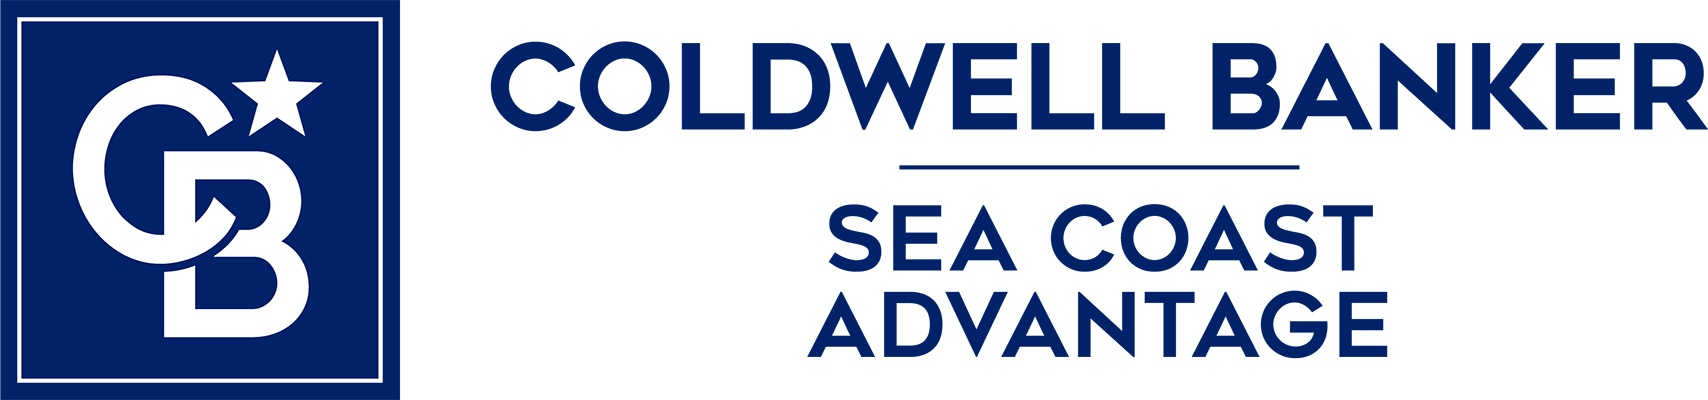 Cassie Williamson - Coldwell Banker Sea Coast Advantage Realty Logo